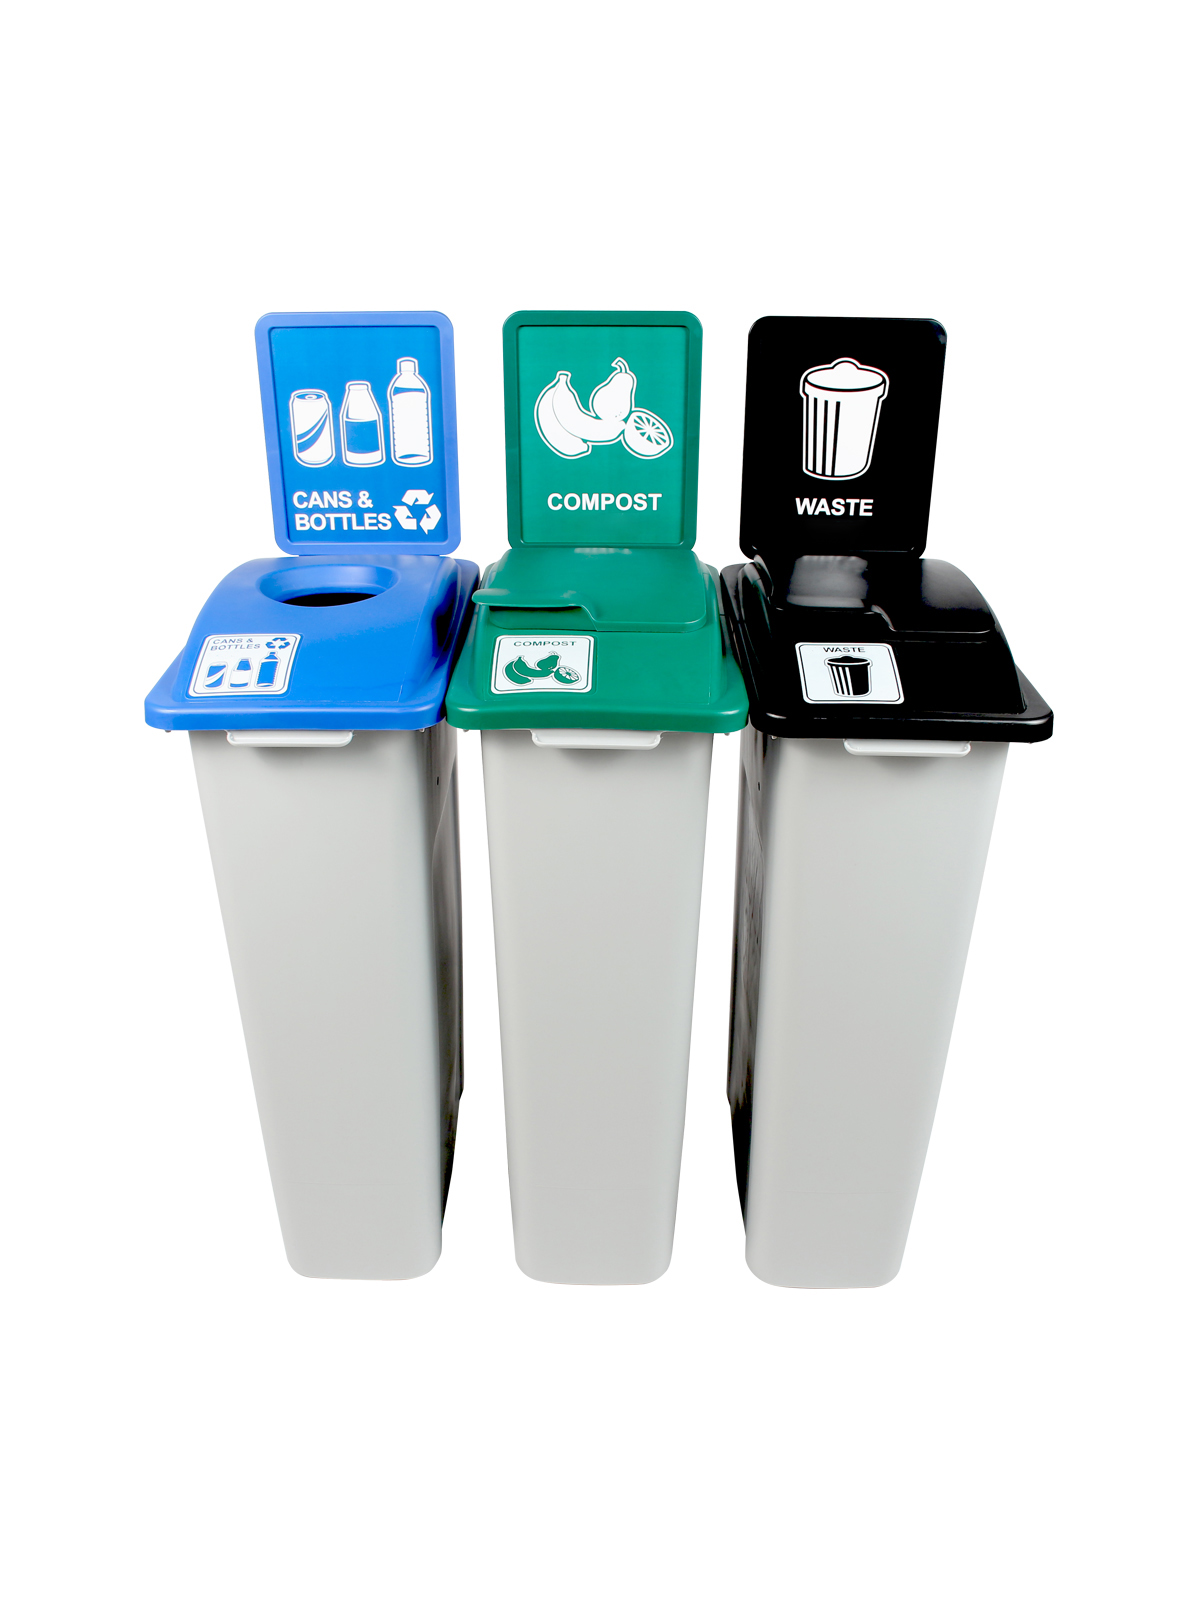 WASTE WATCHER - Triple - Cans & Bottles-Compost-Waste - Circle-Solid Lift-Solid Lift - Grey-Blue-Green-Black